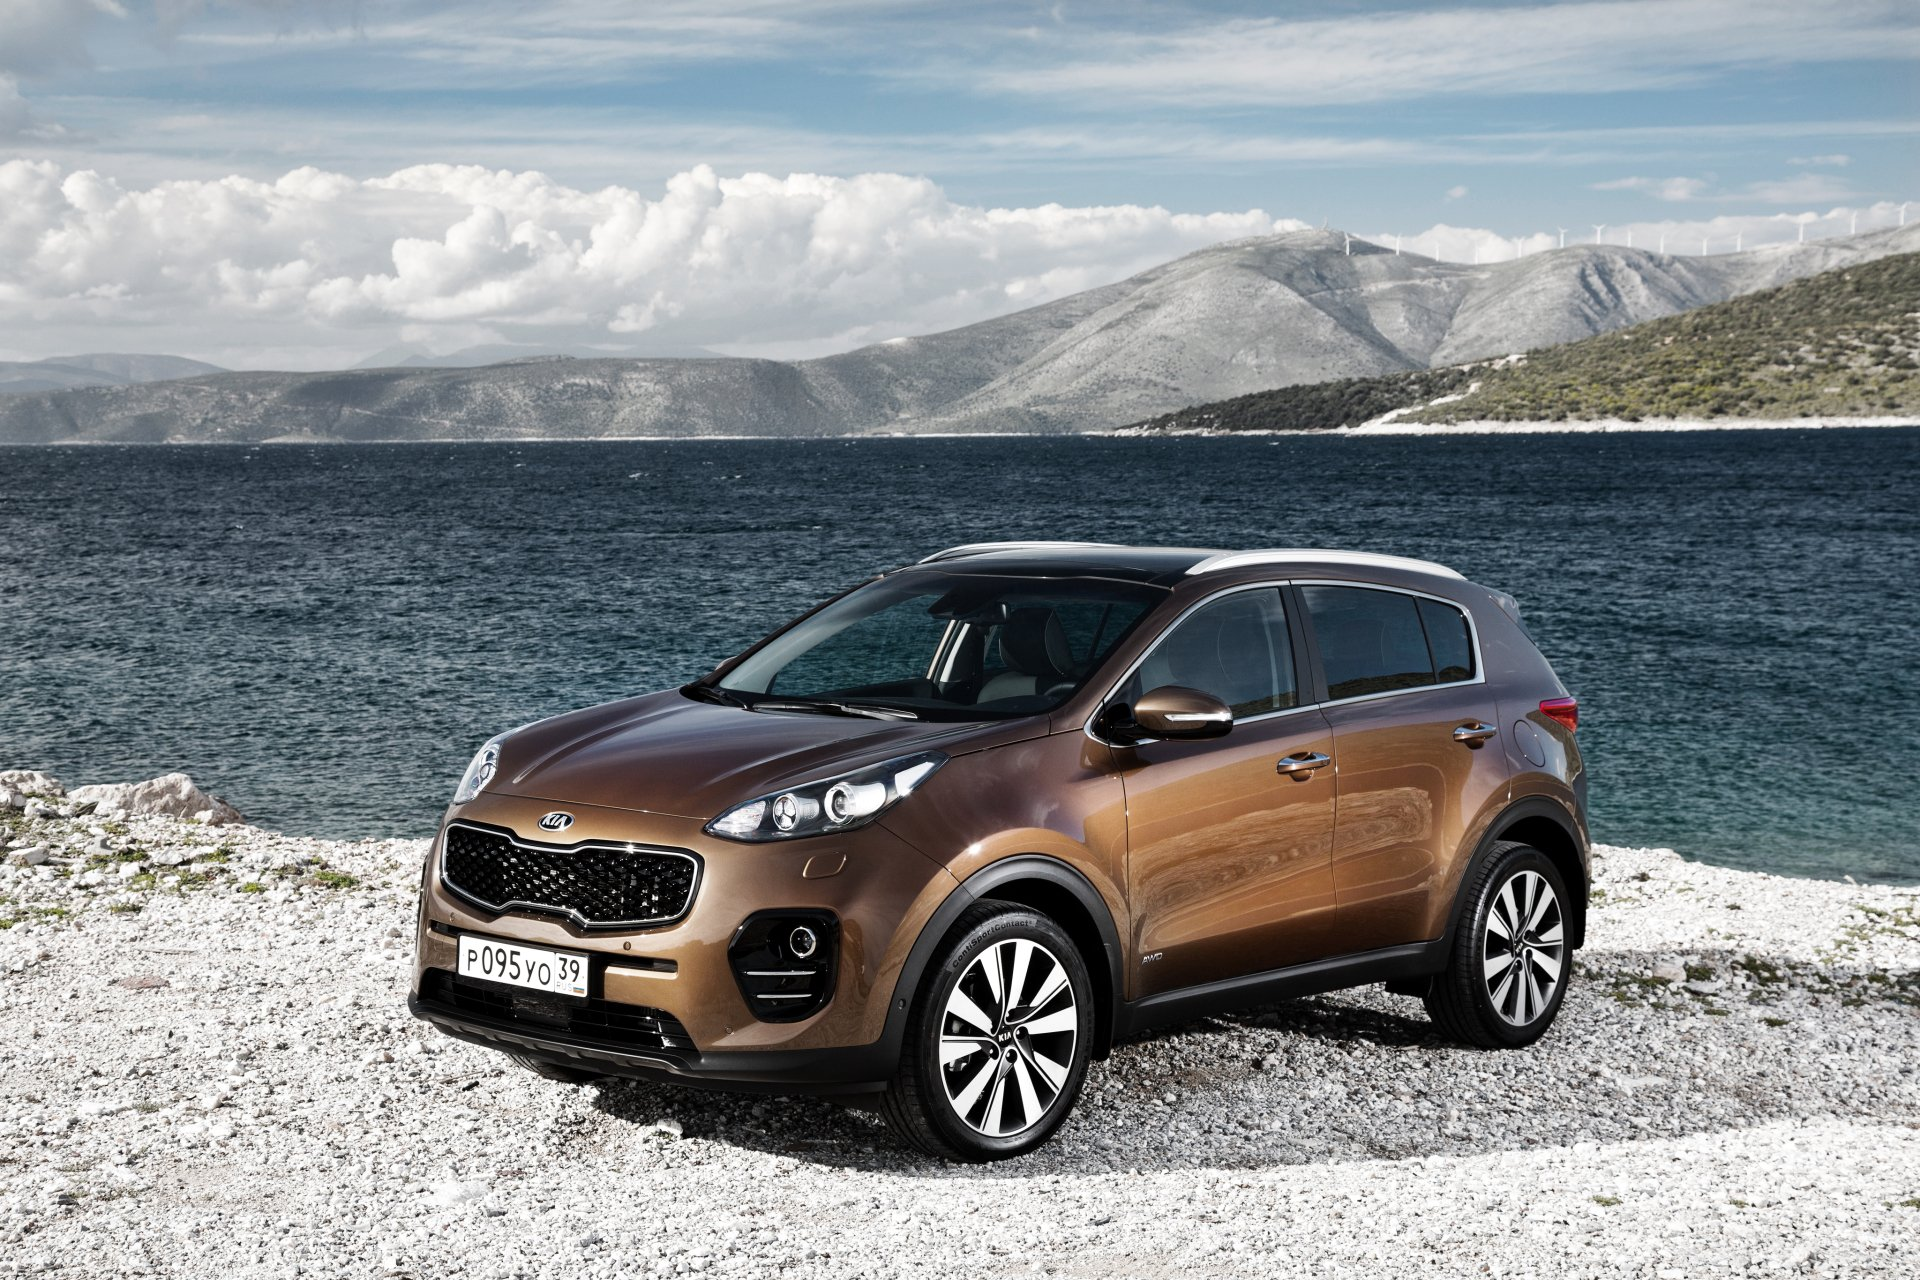 Kia is Rated as the Most Reliable Brand on the Market